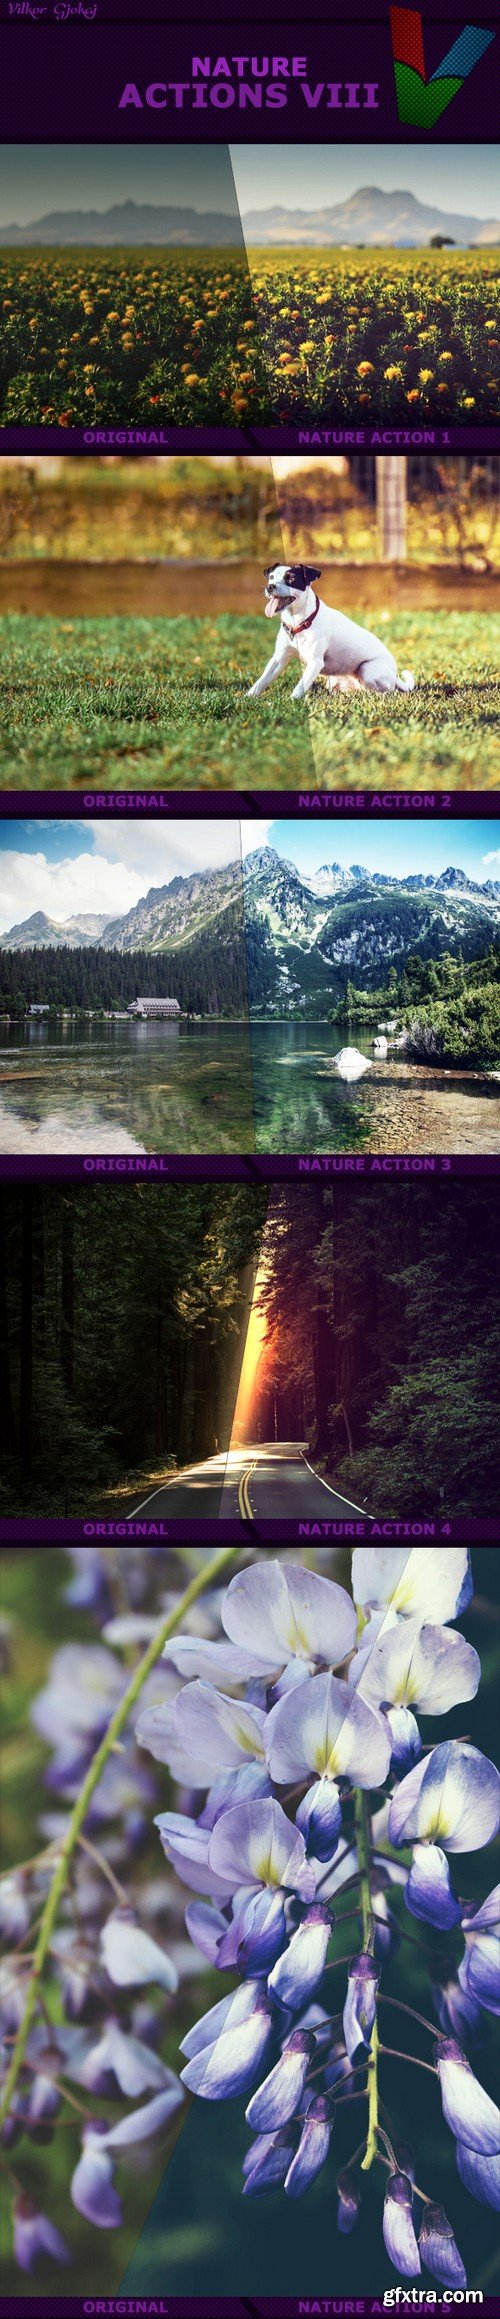 Graphicriver - Nature Actions VIII 17355618